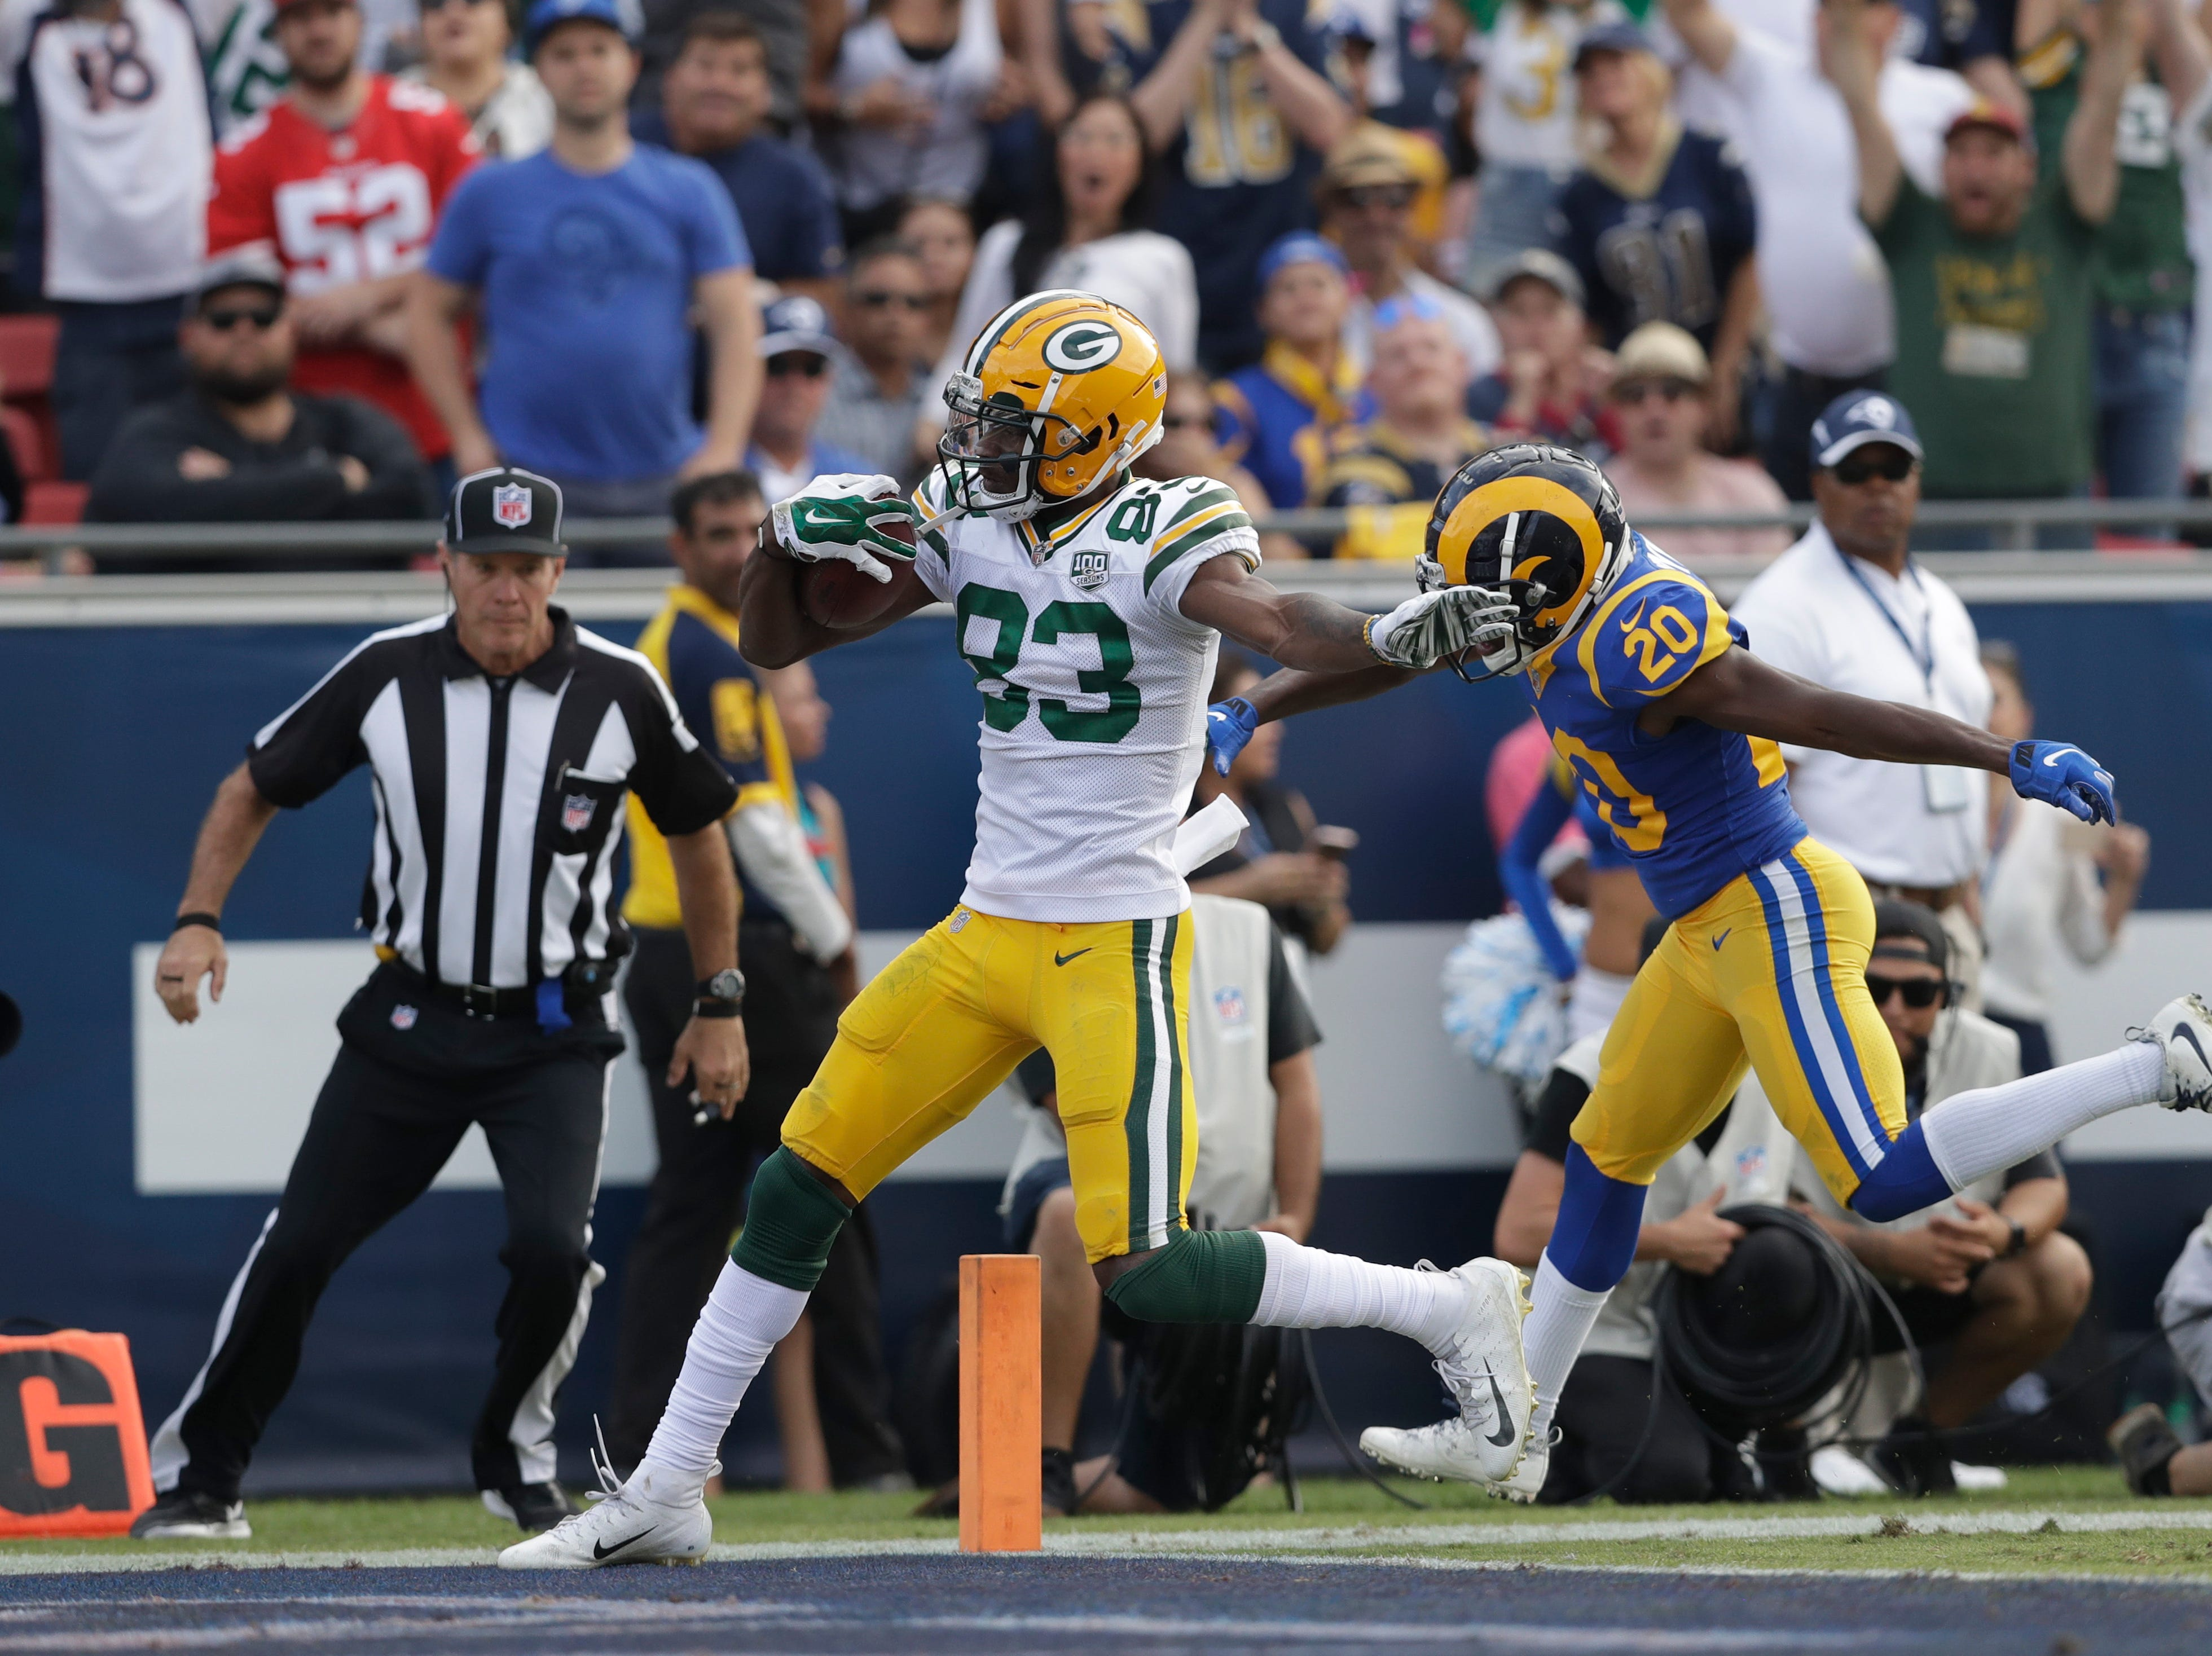 Green Bay Packers wide receiver Marquez Valdes-Scantling scores a touchdown during the second half of an NFL football game against the Los Angeles Rams, Sunday, Oct. 28, 2018, in Los Angeles. (AP Photo/Marcio Jose Sanchez)